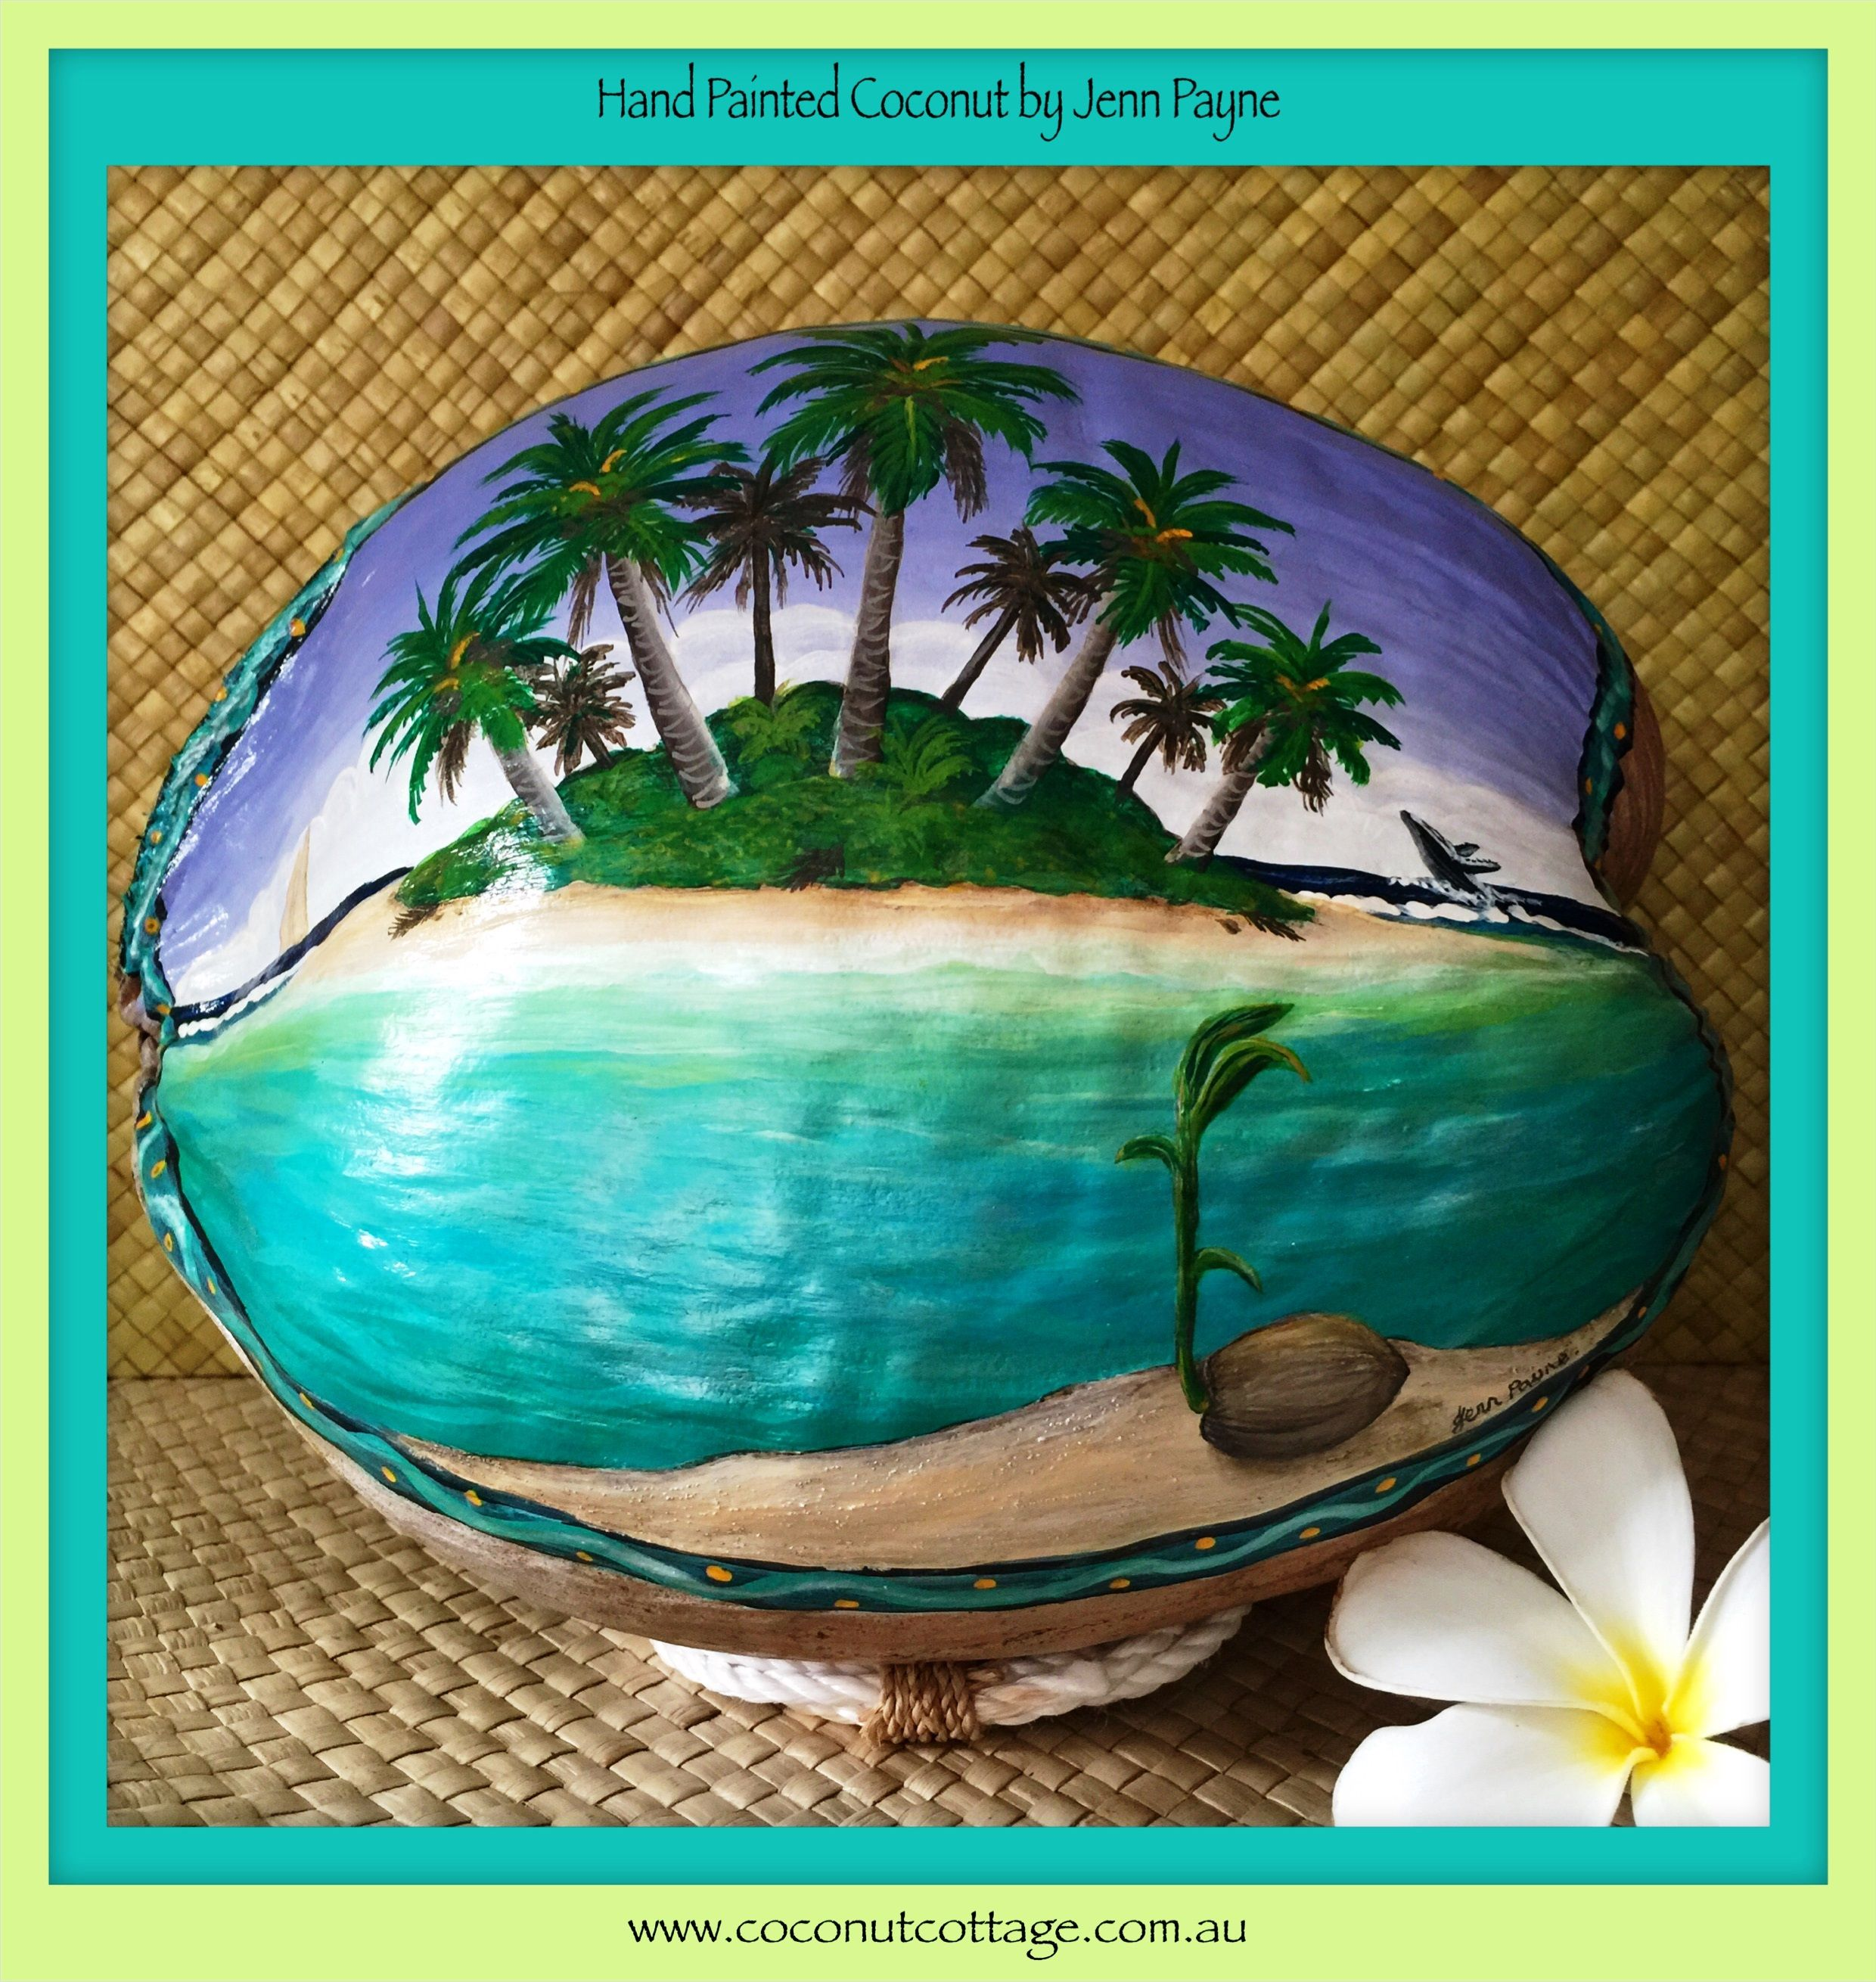 Tropical Artwork Coconuts Coconut Cottage Is The Home Of Original